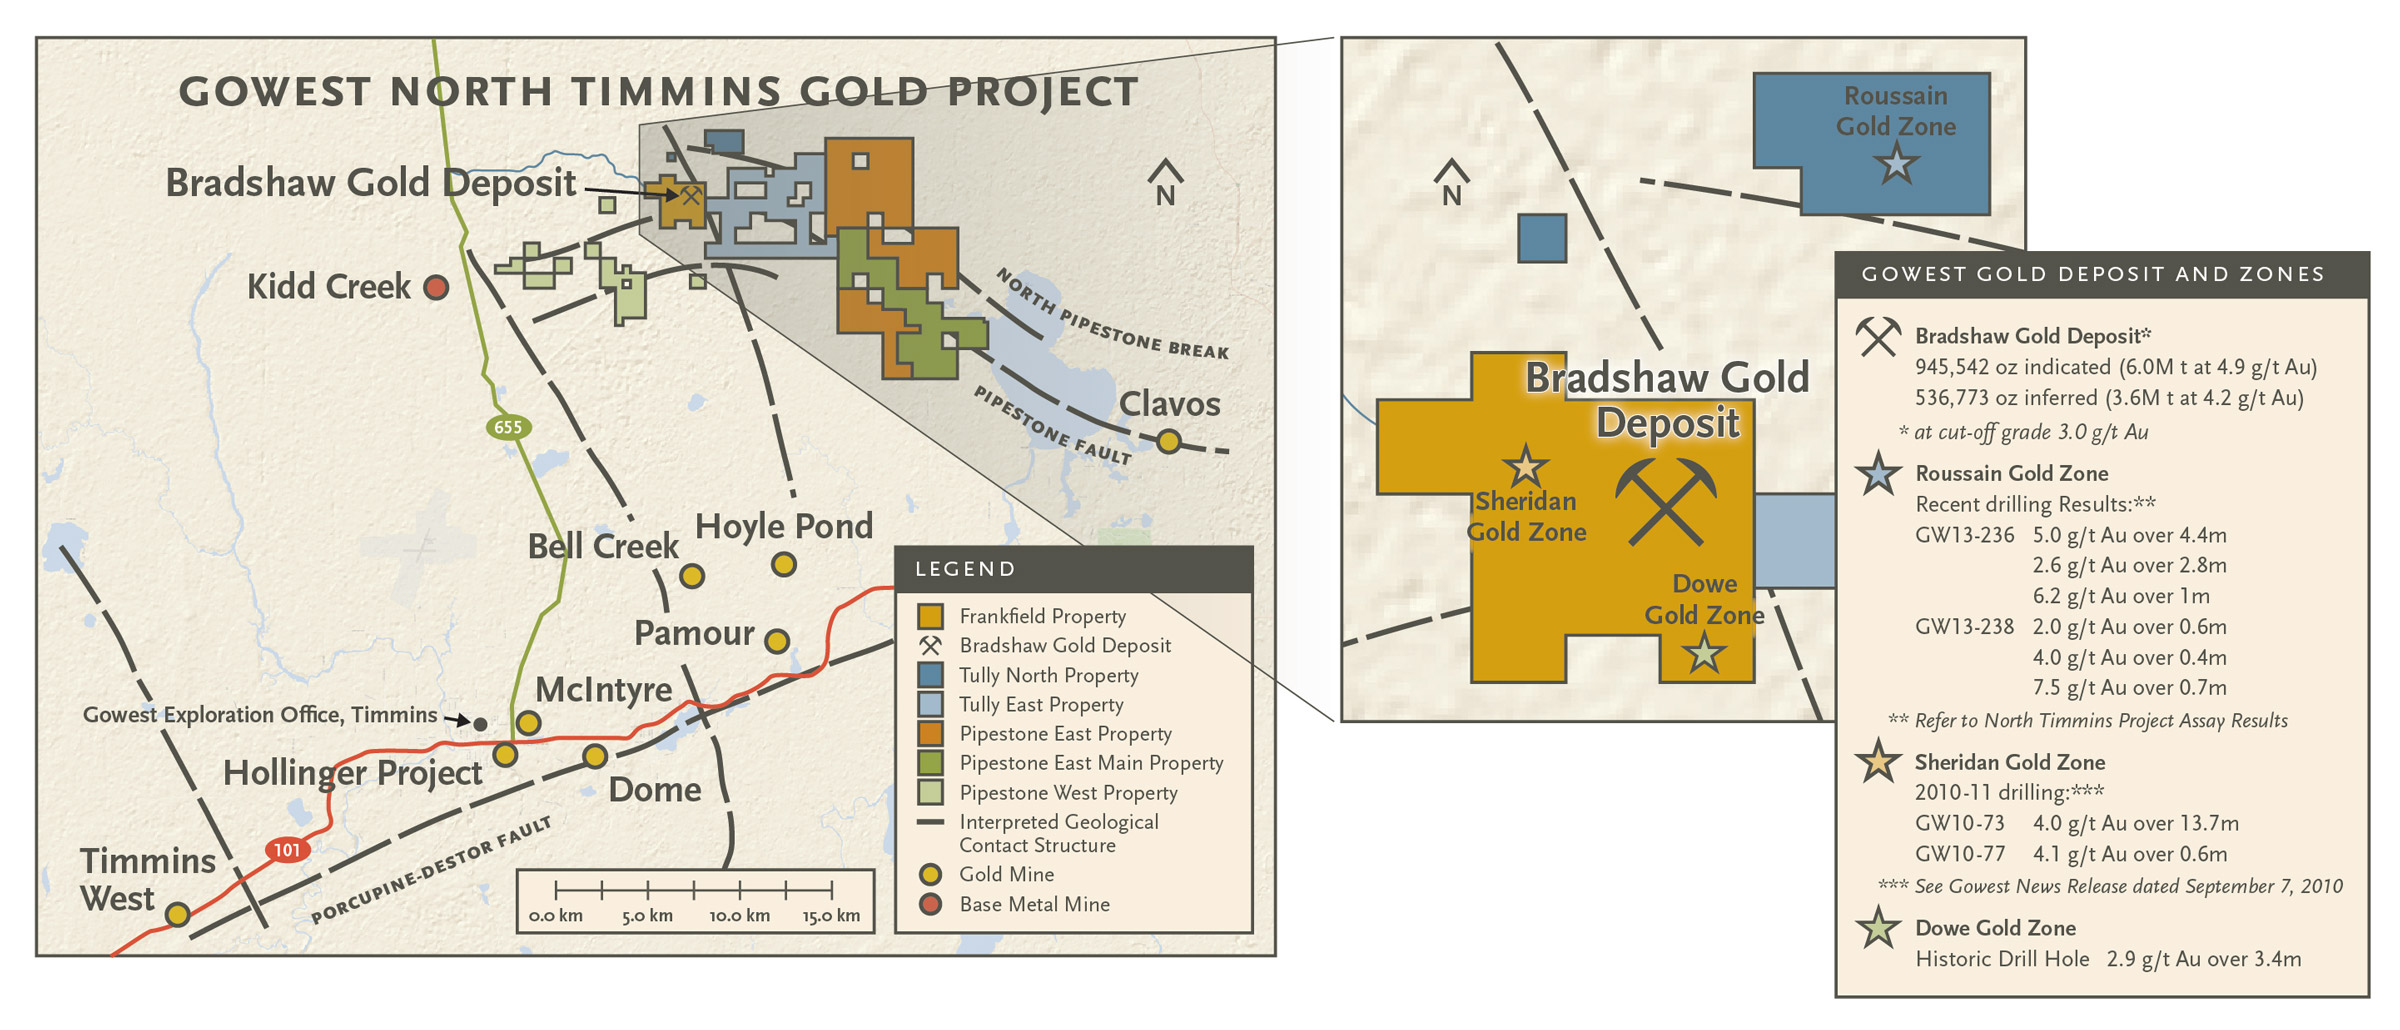 North Timmins Gold Project Gowest Gold